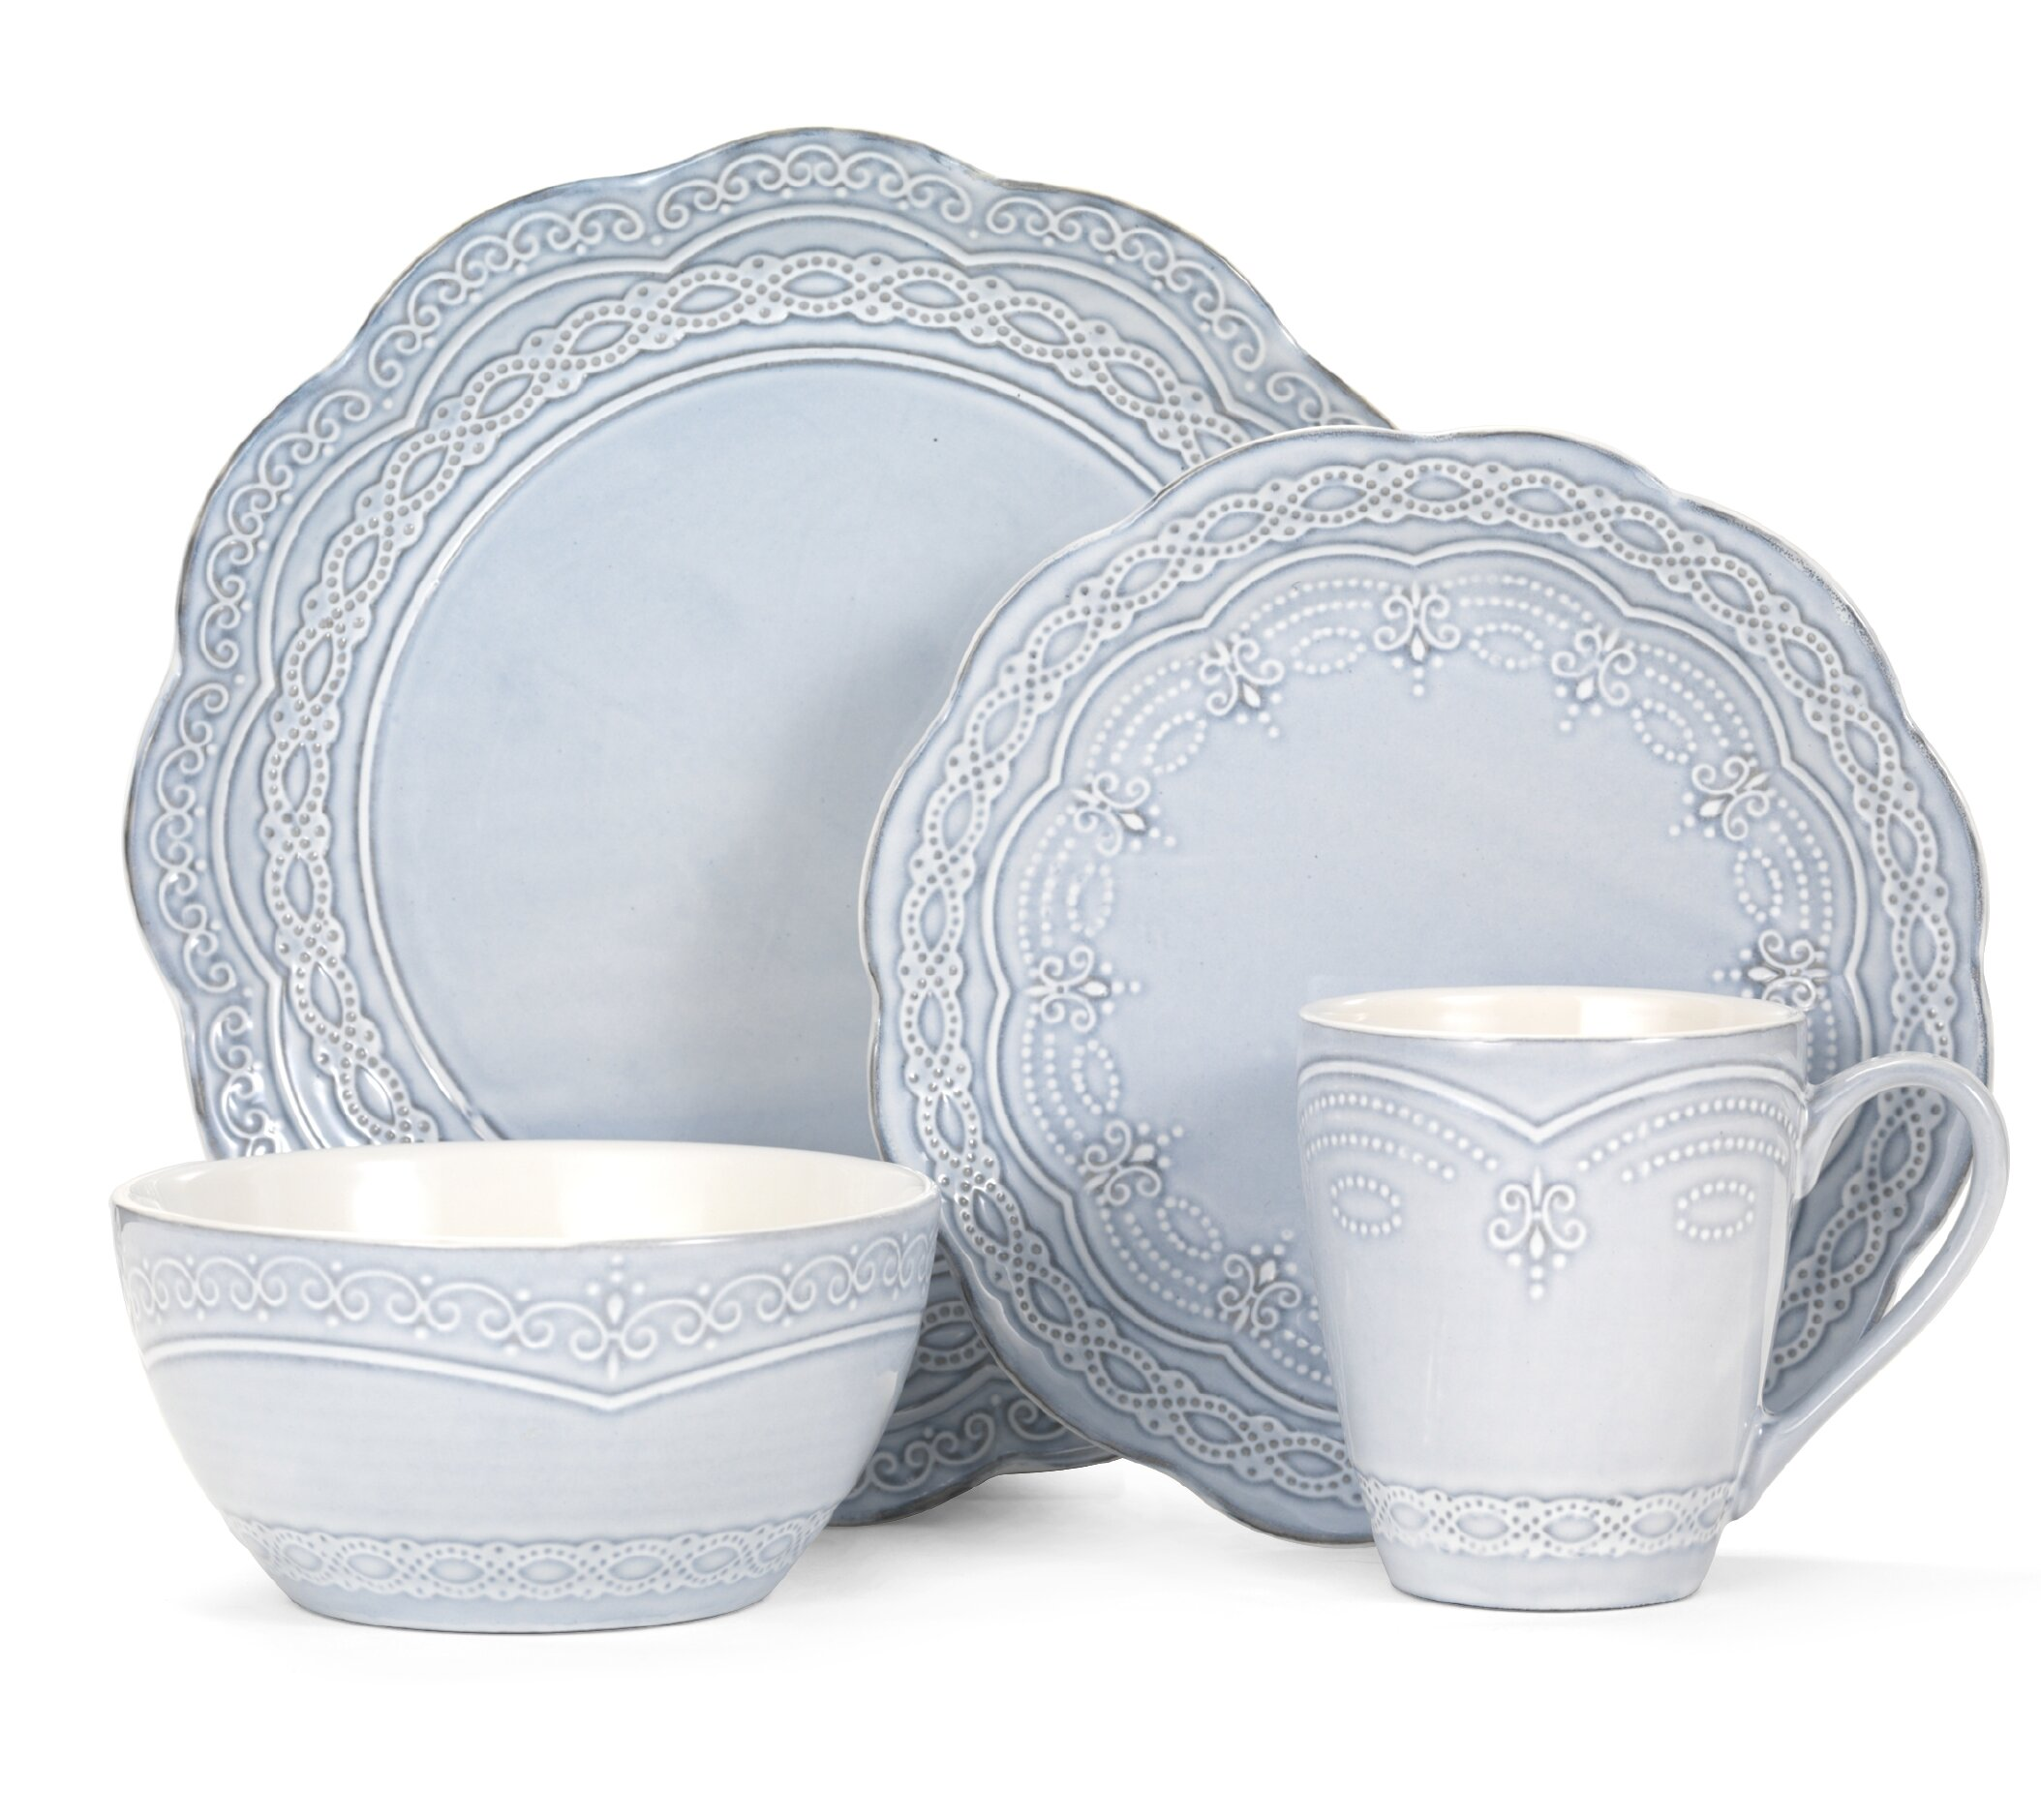 Pfaltzgraff Everyday Serephina 16 Piece Dinnerware Set Service for 4 \u0026 Reviews | Wayfair  sc 1 st  Wayfair & Pfaltzgraff Everyday Serephina 16 Piece Dinnerware Set Service for ...